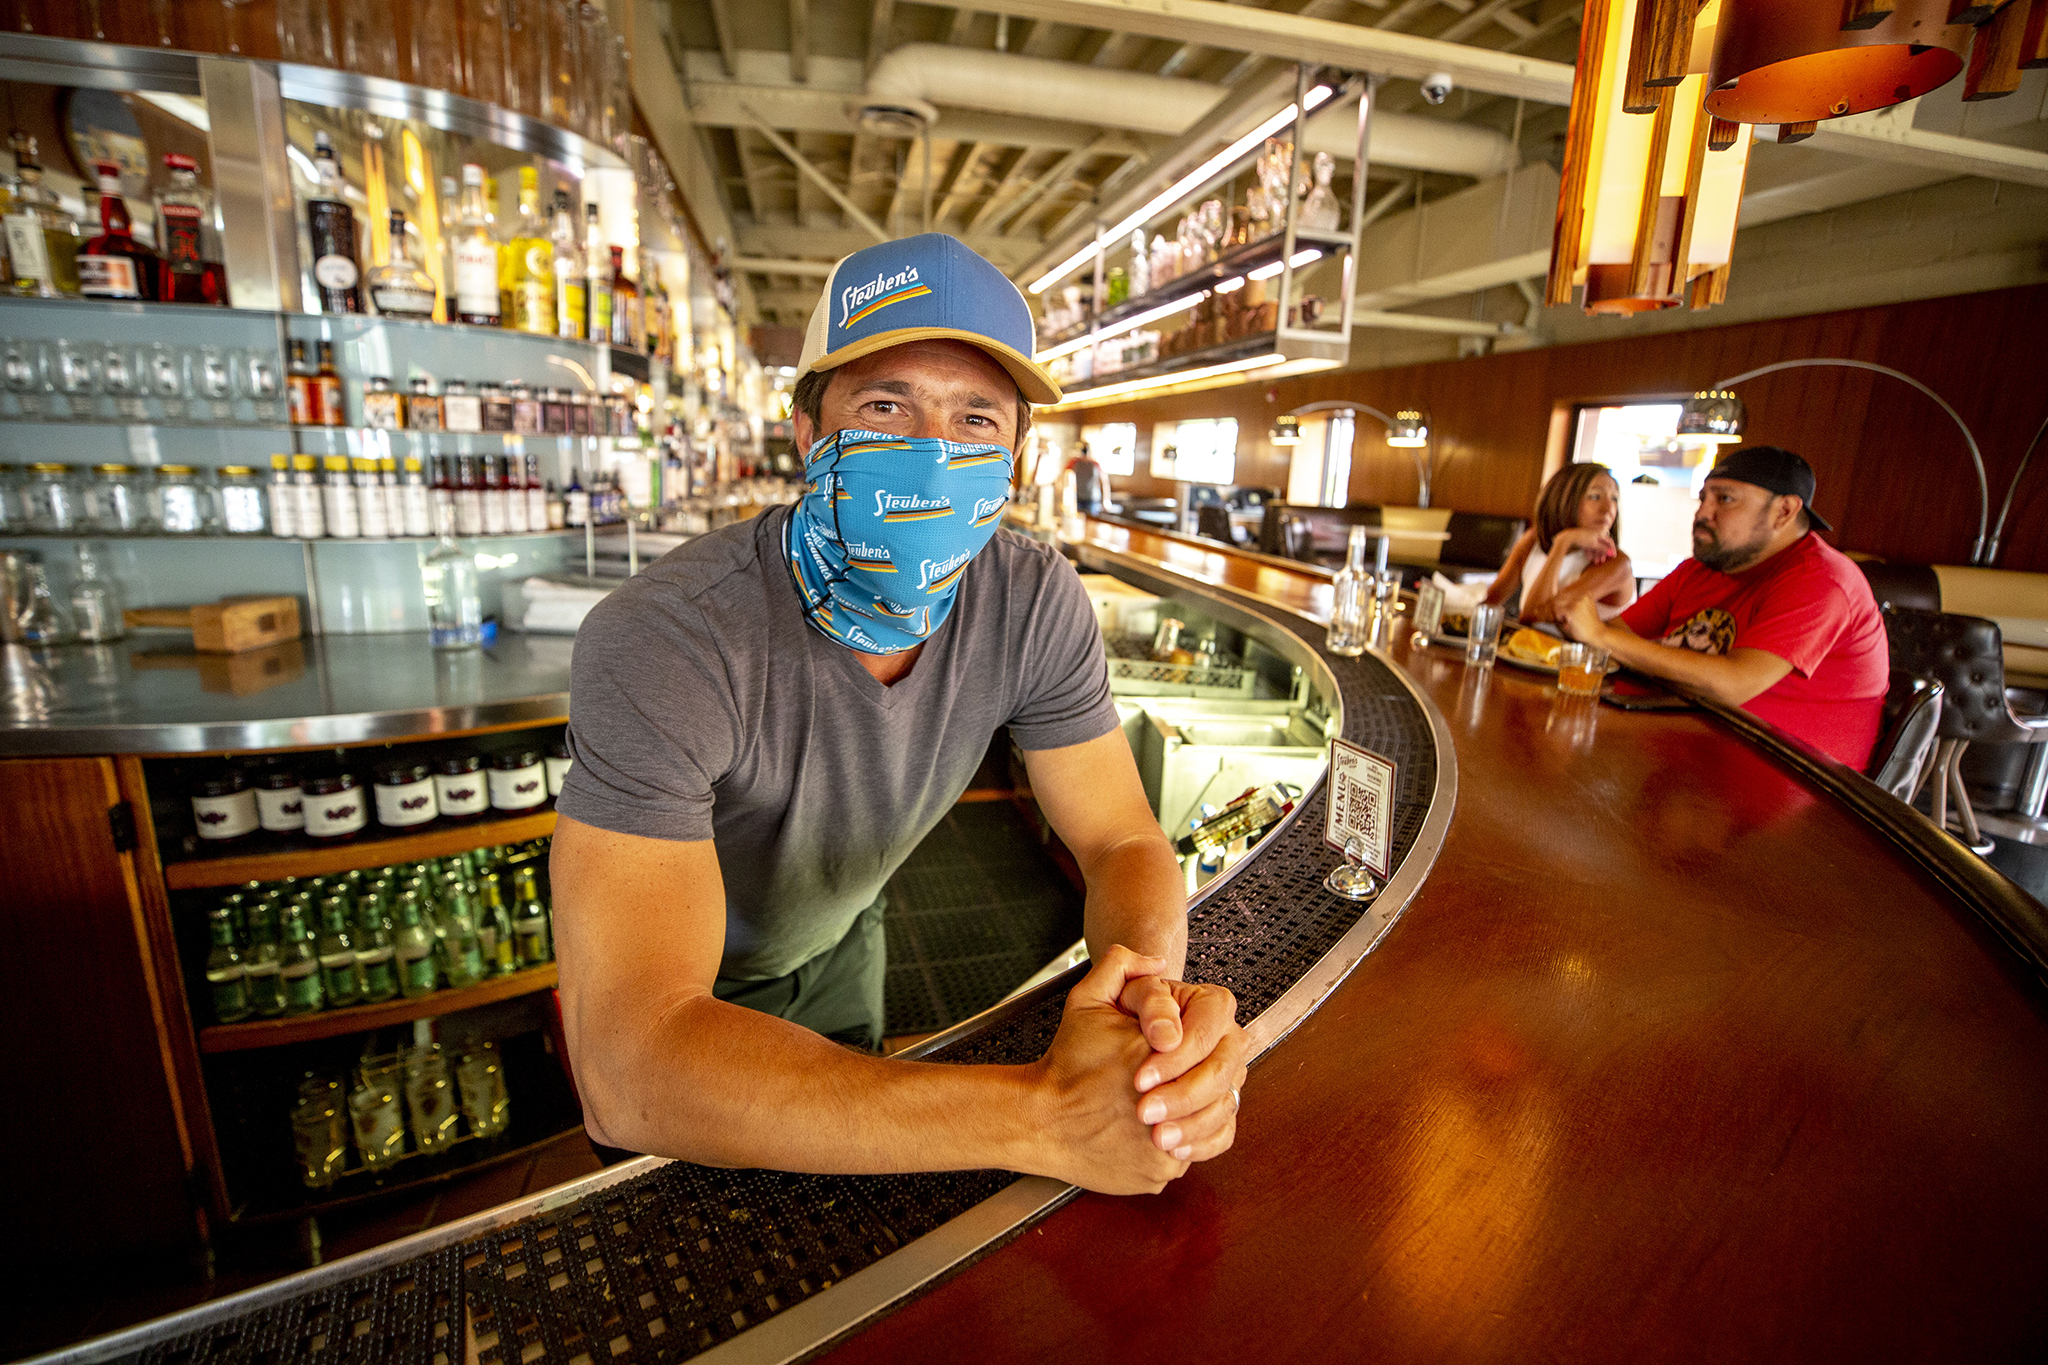 Josh Wolkon, owner of Steuben's, stands behind his 17th Avenue Bar. July 16, 2020.